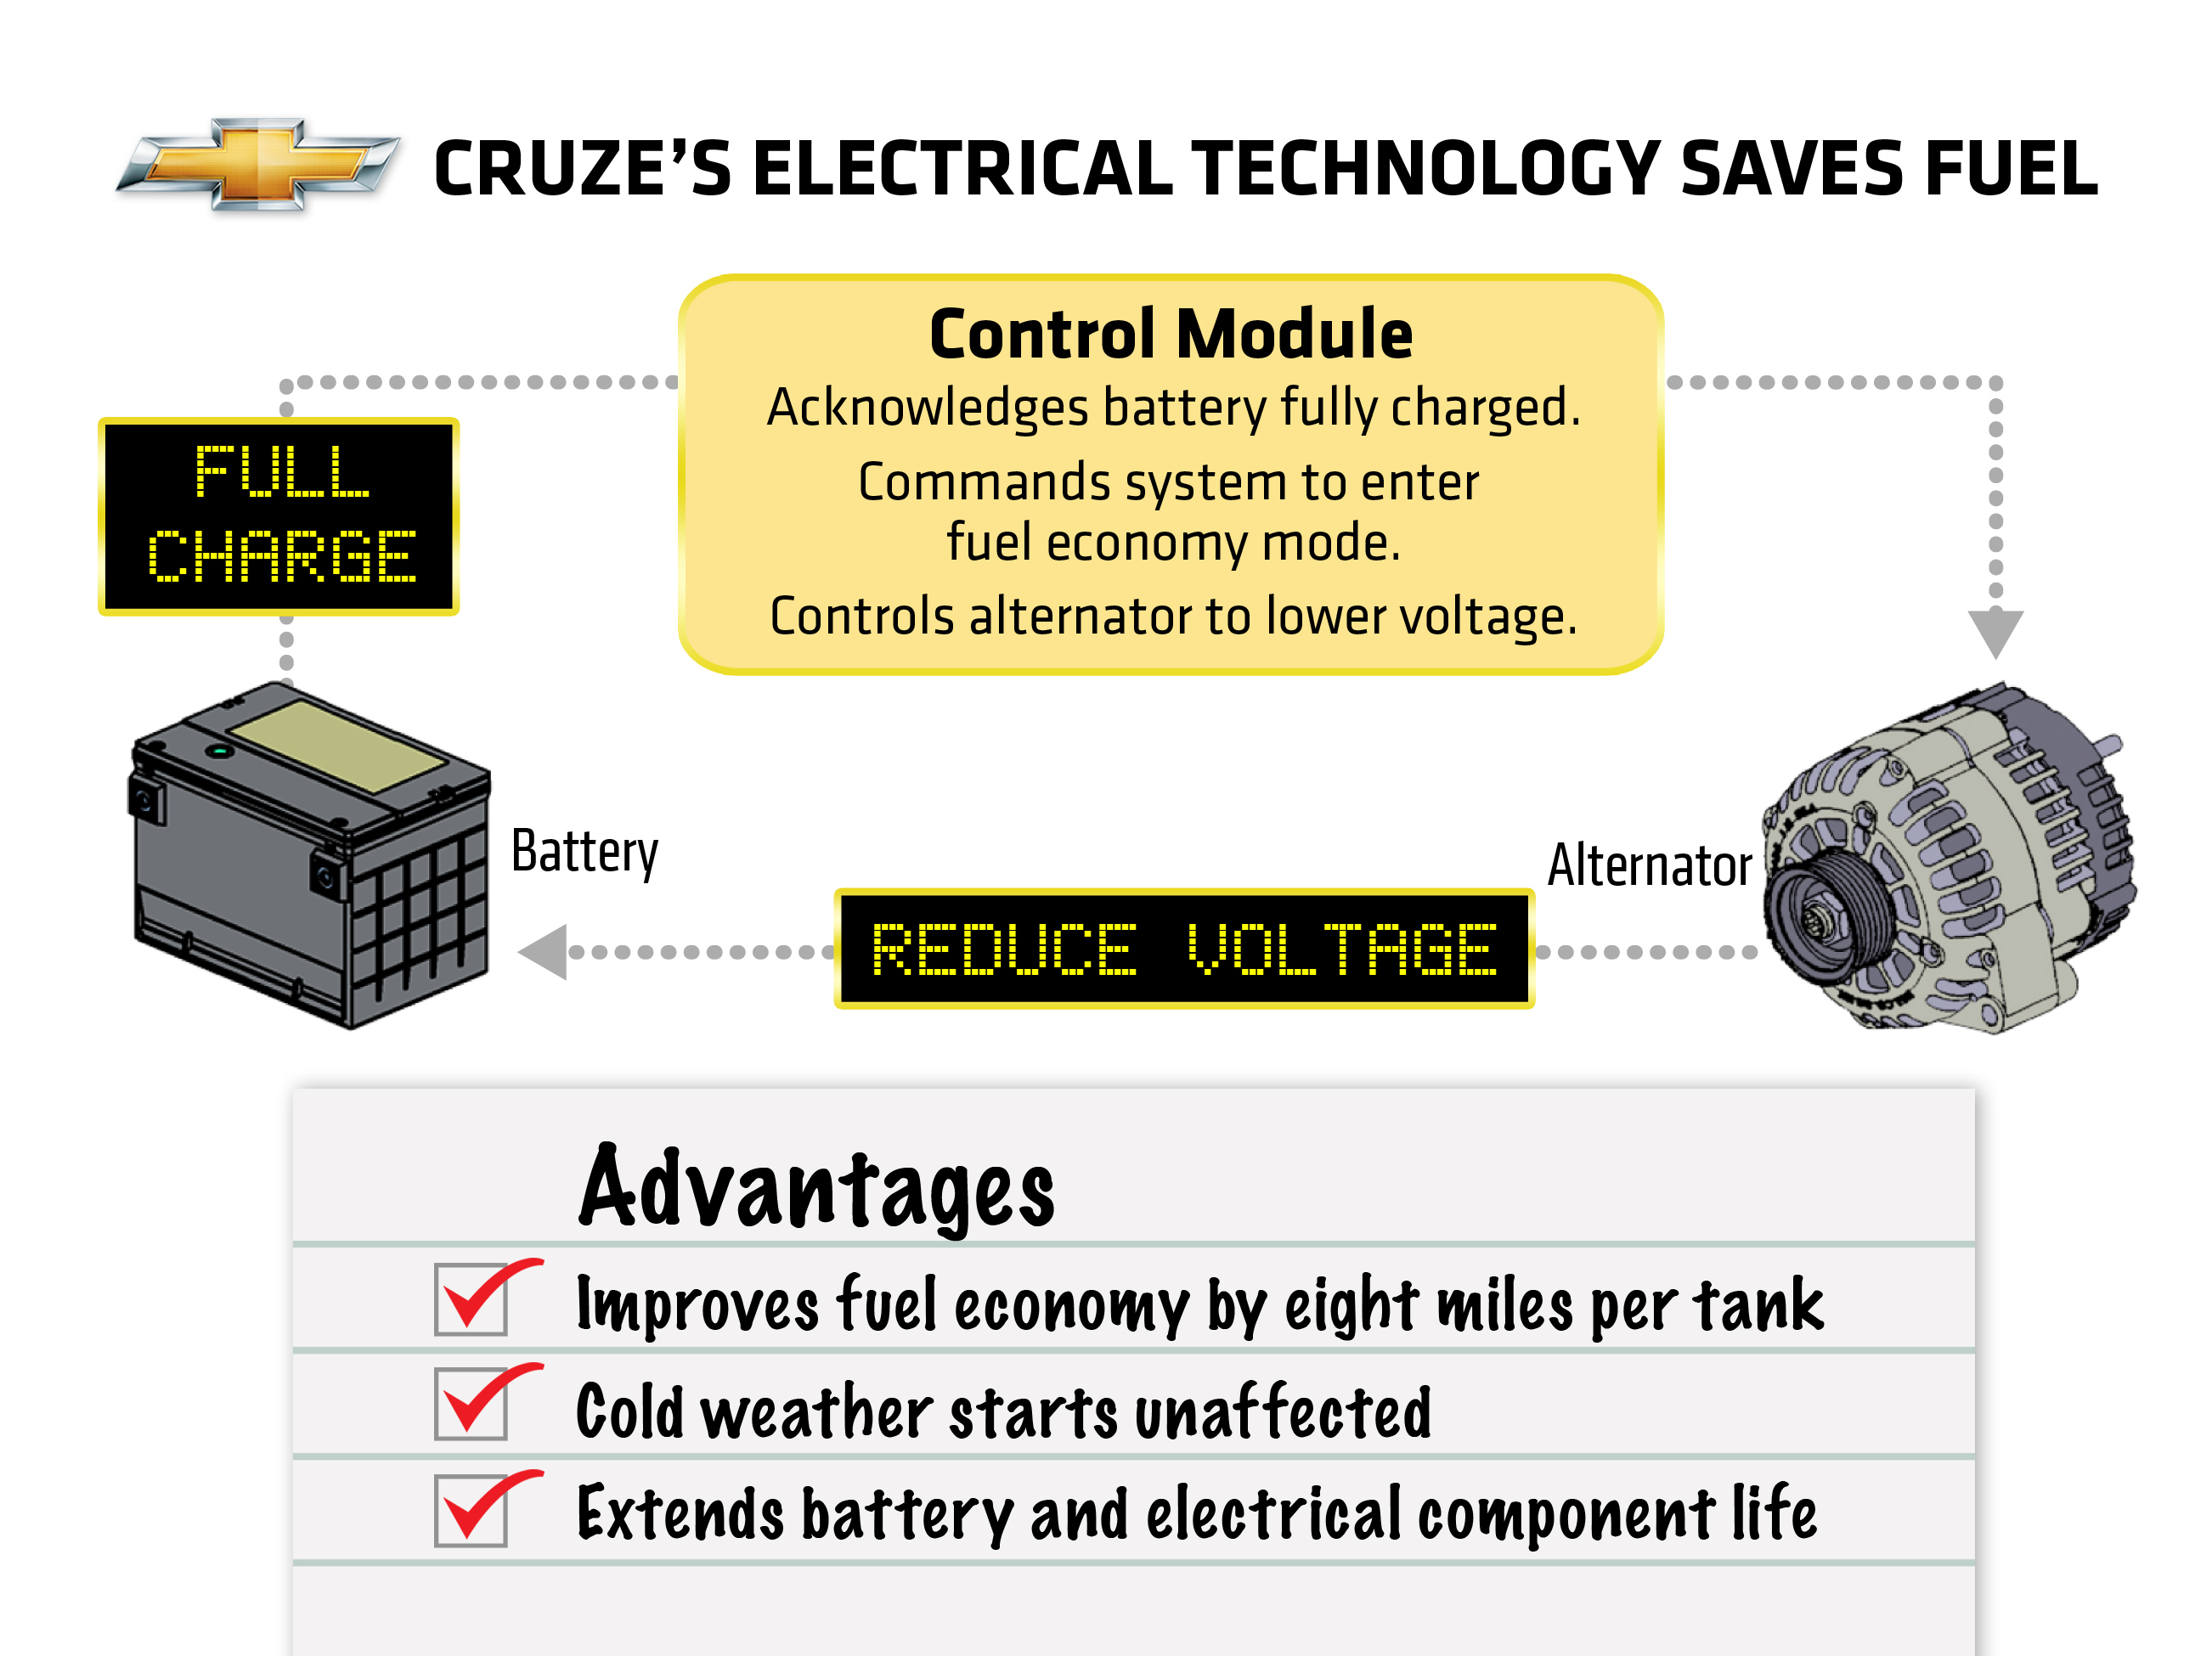 Fuel Efficiency United States Saving Technologies 2013 Dodge Dart Wiring Diagram Active Shutters Exploded View Of The Air Shutter System In 2011 Chevrolet Cruze Which Uses Sensors To Feel And Sense Wind Temperature Conditions